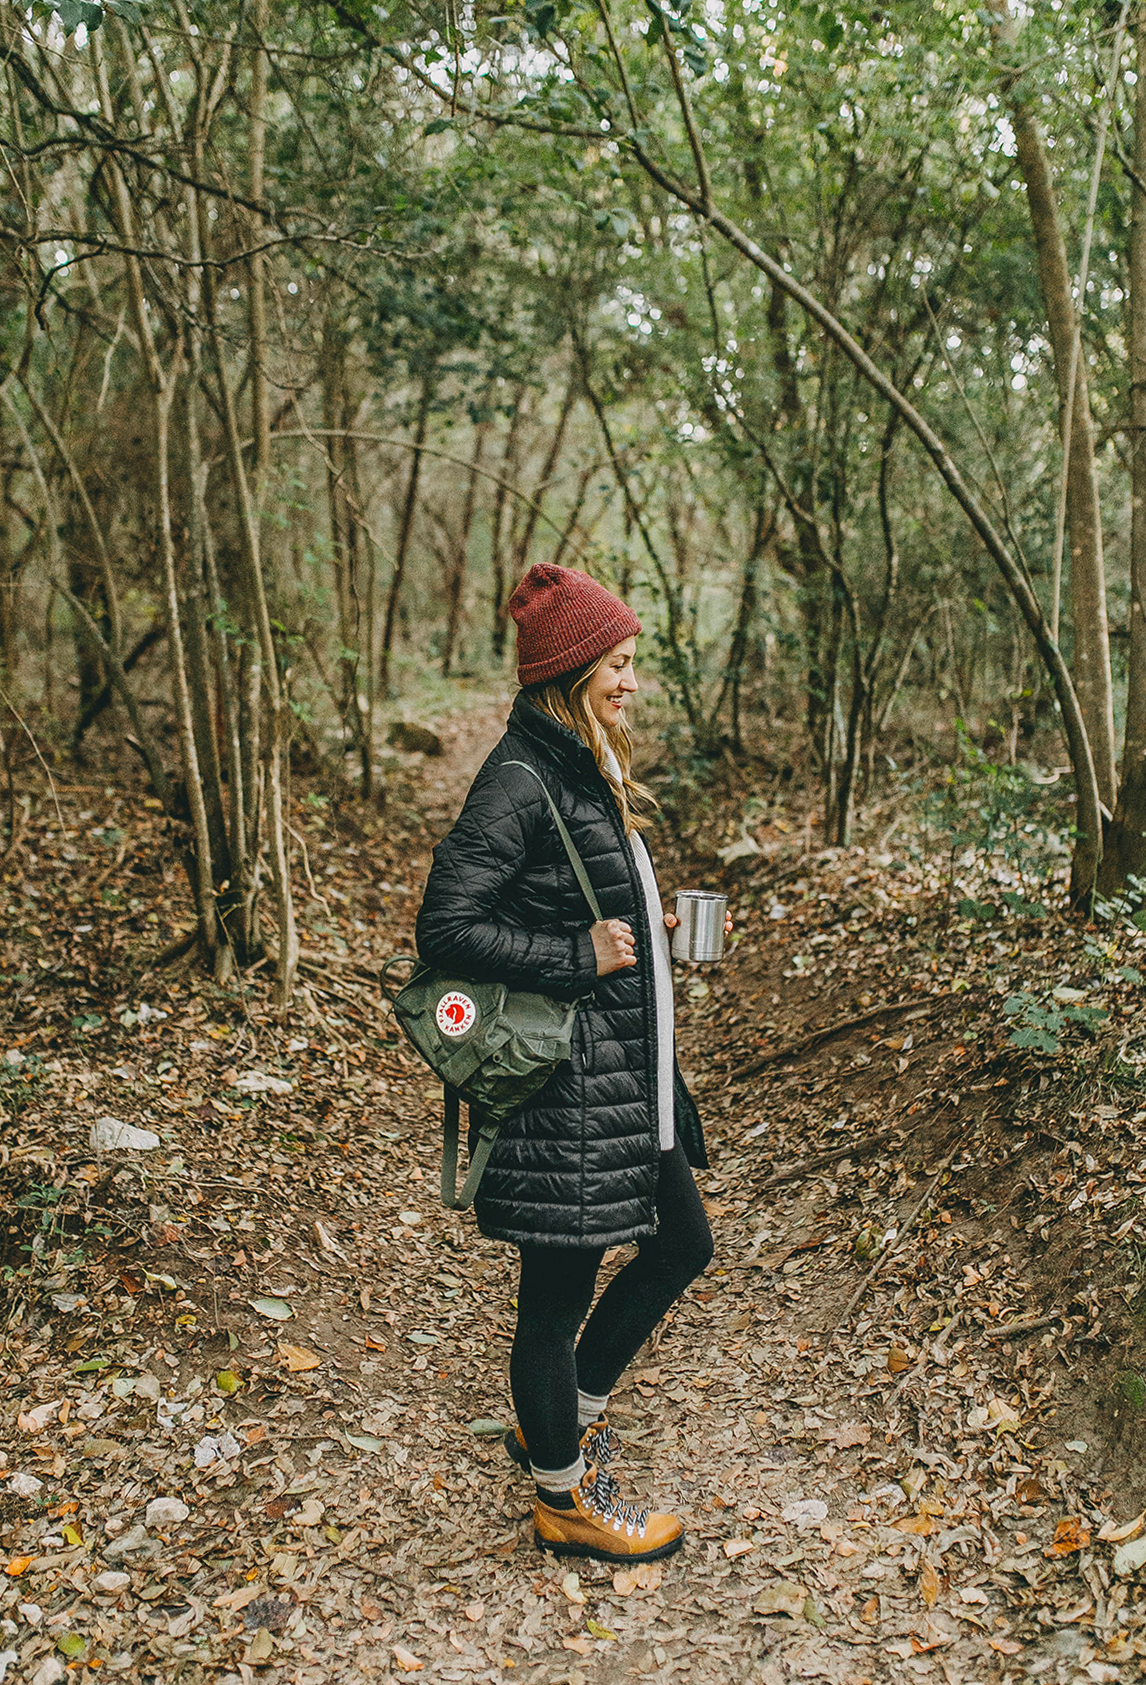 livvyland-blog-olivia-watson-austin-texas-fashion-lifestyle-blogger-greenbelt-fall-patagonia-radalie-parka-sorel-ainsley-boots-hiking-outfit-backcountry-1